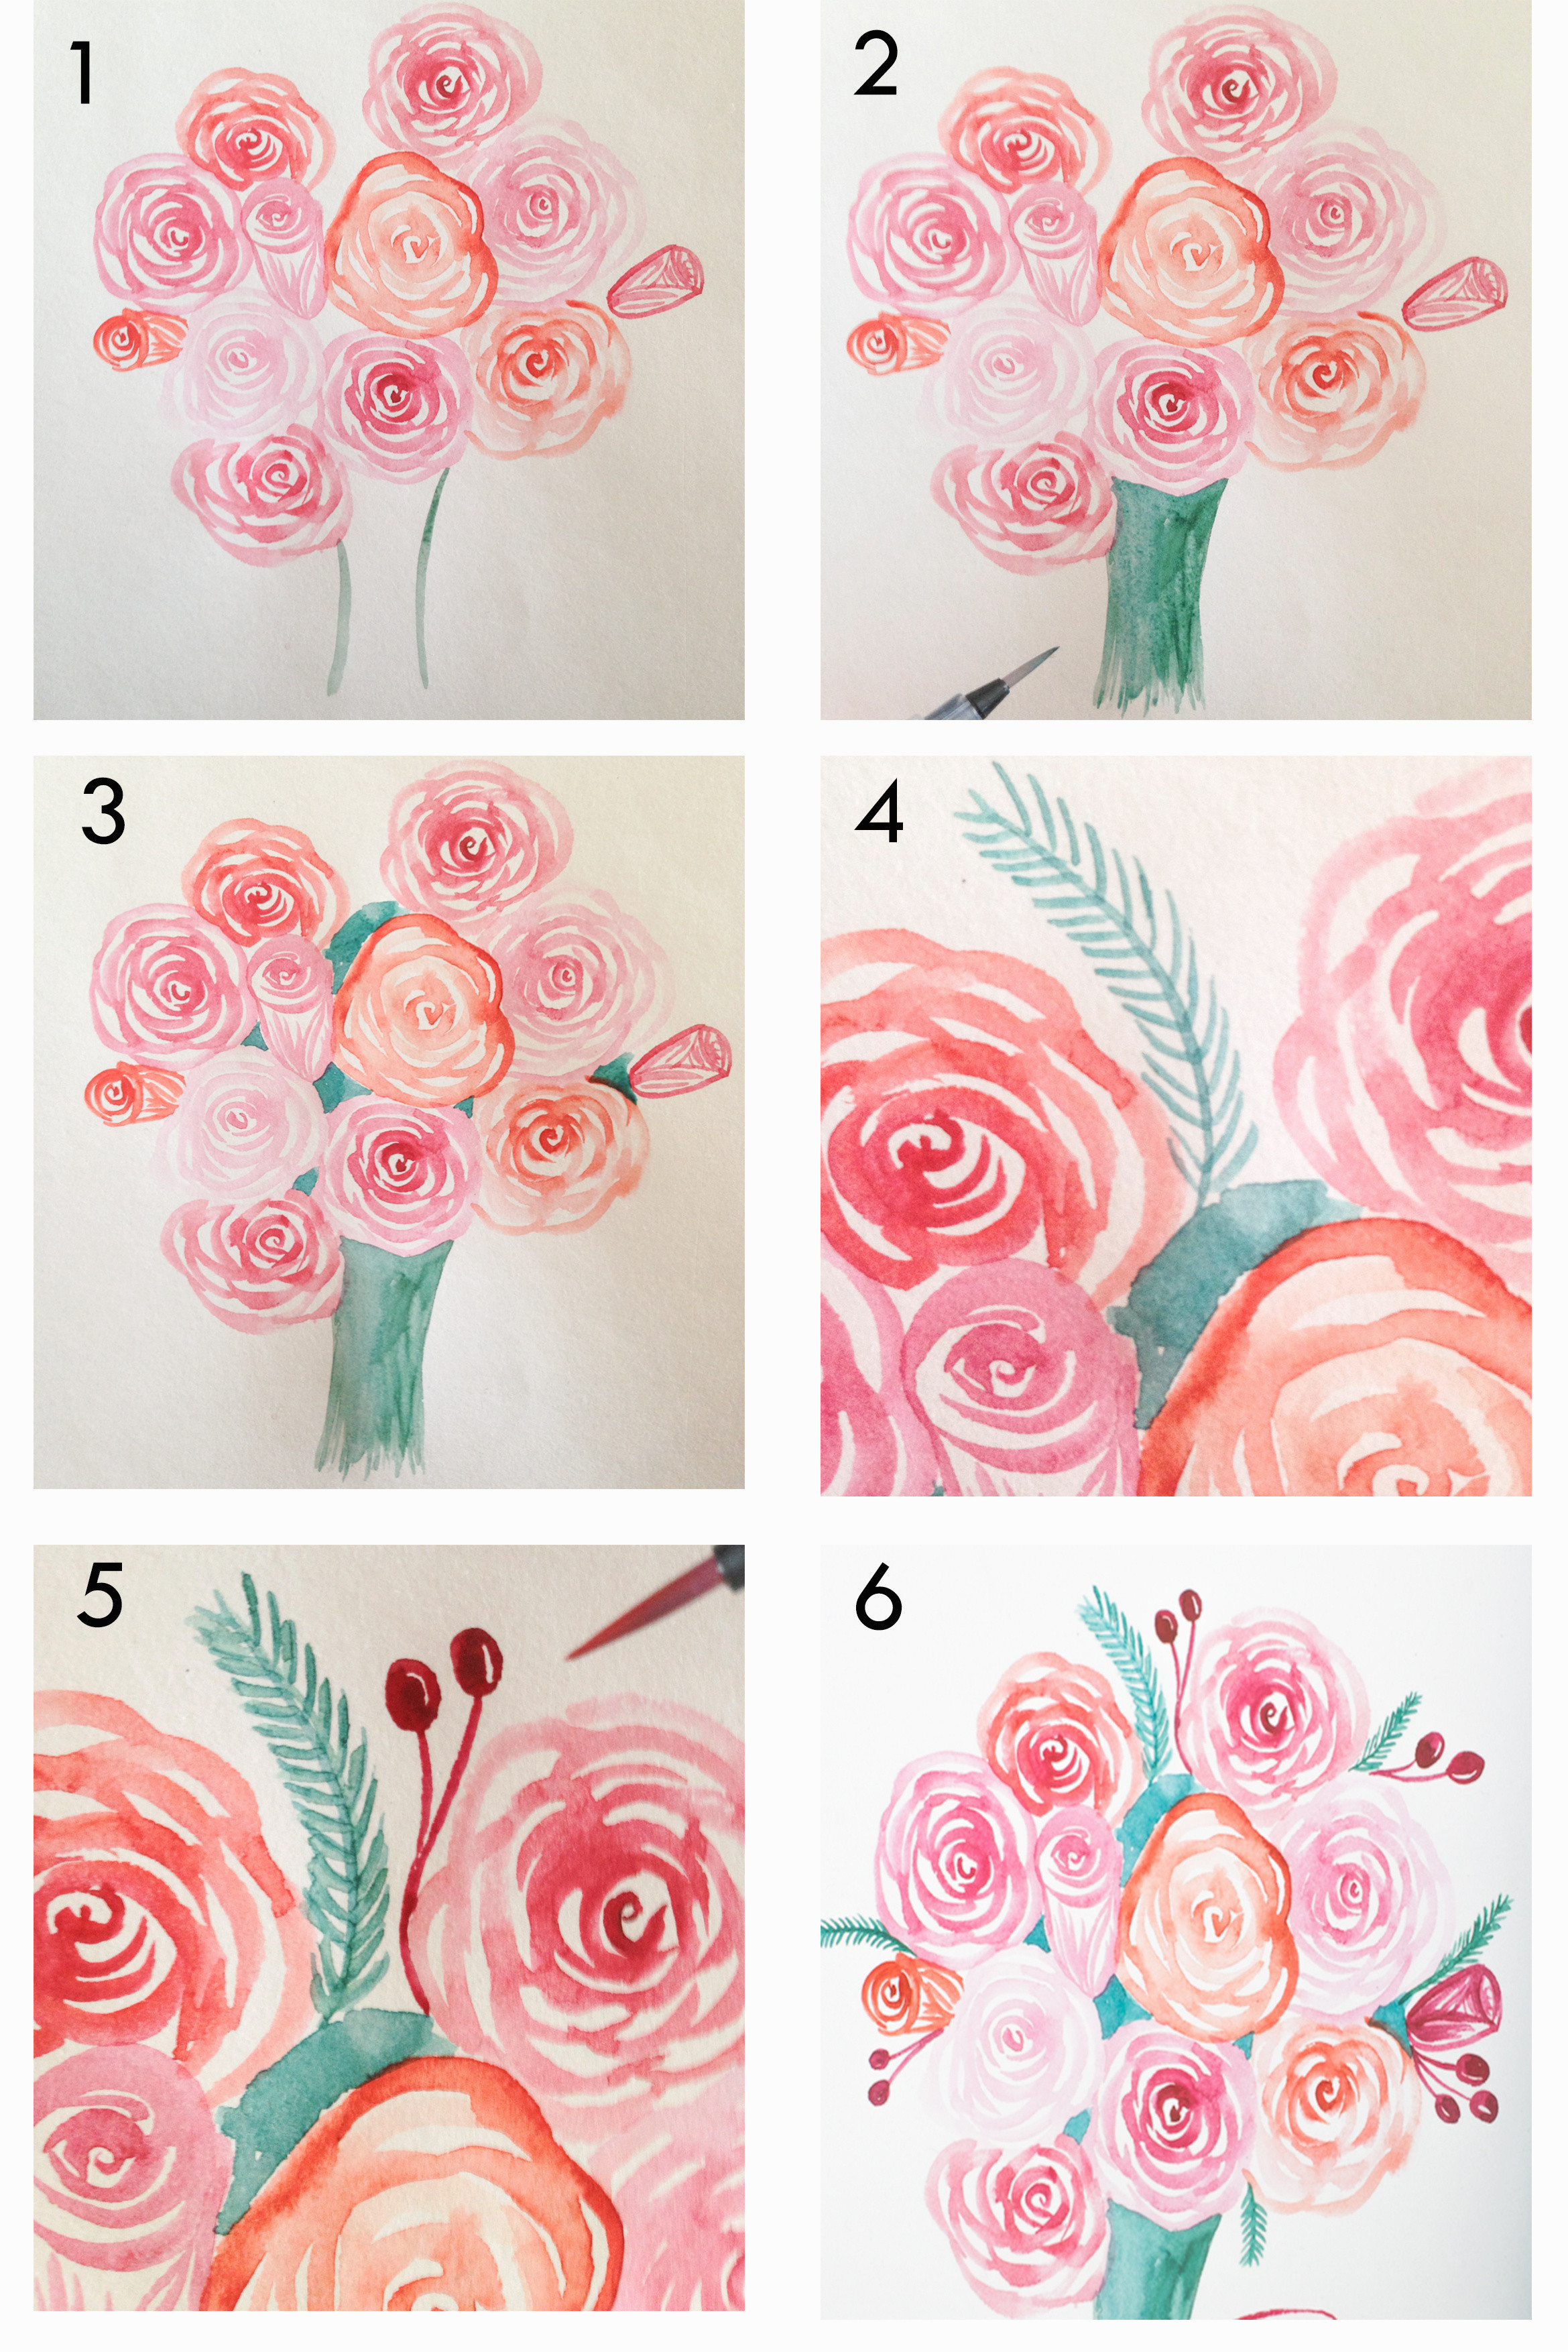 6 Inspirational Drawing Flowers for Beginners Pics